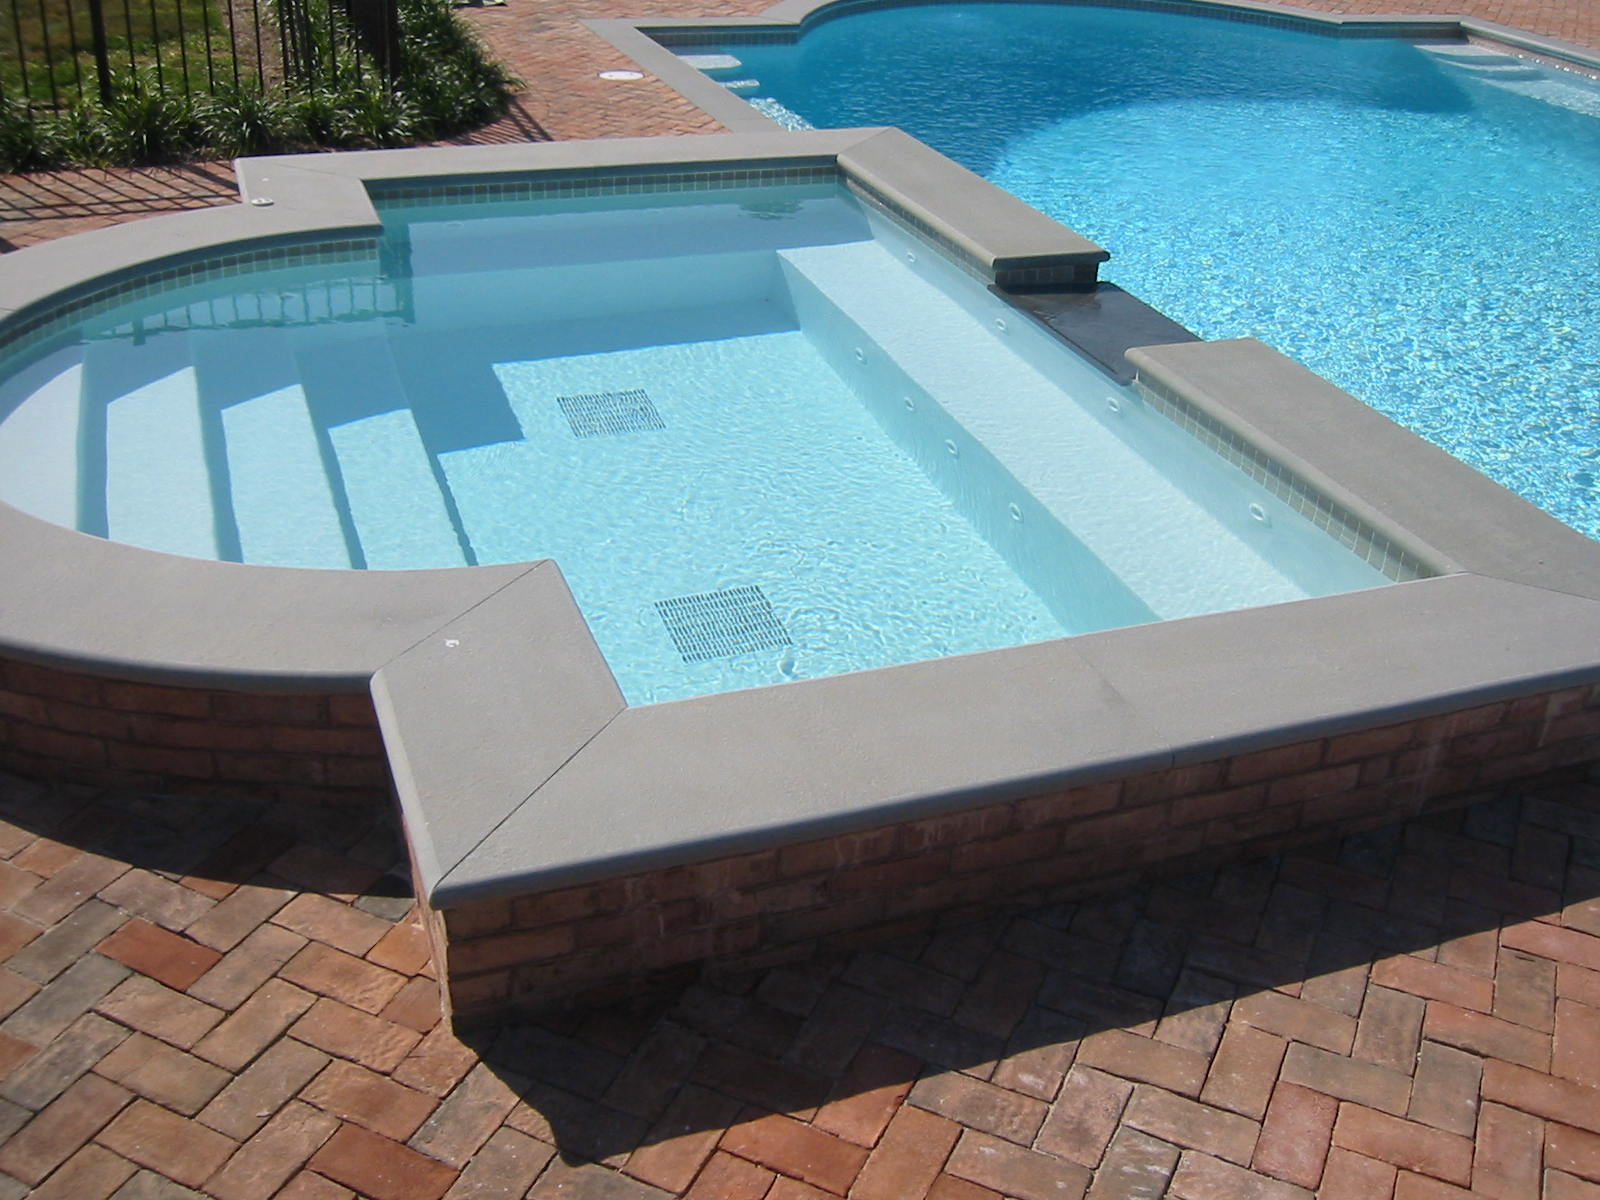 Top hot tub landscape design company in Long Island, NY